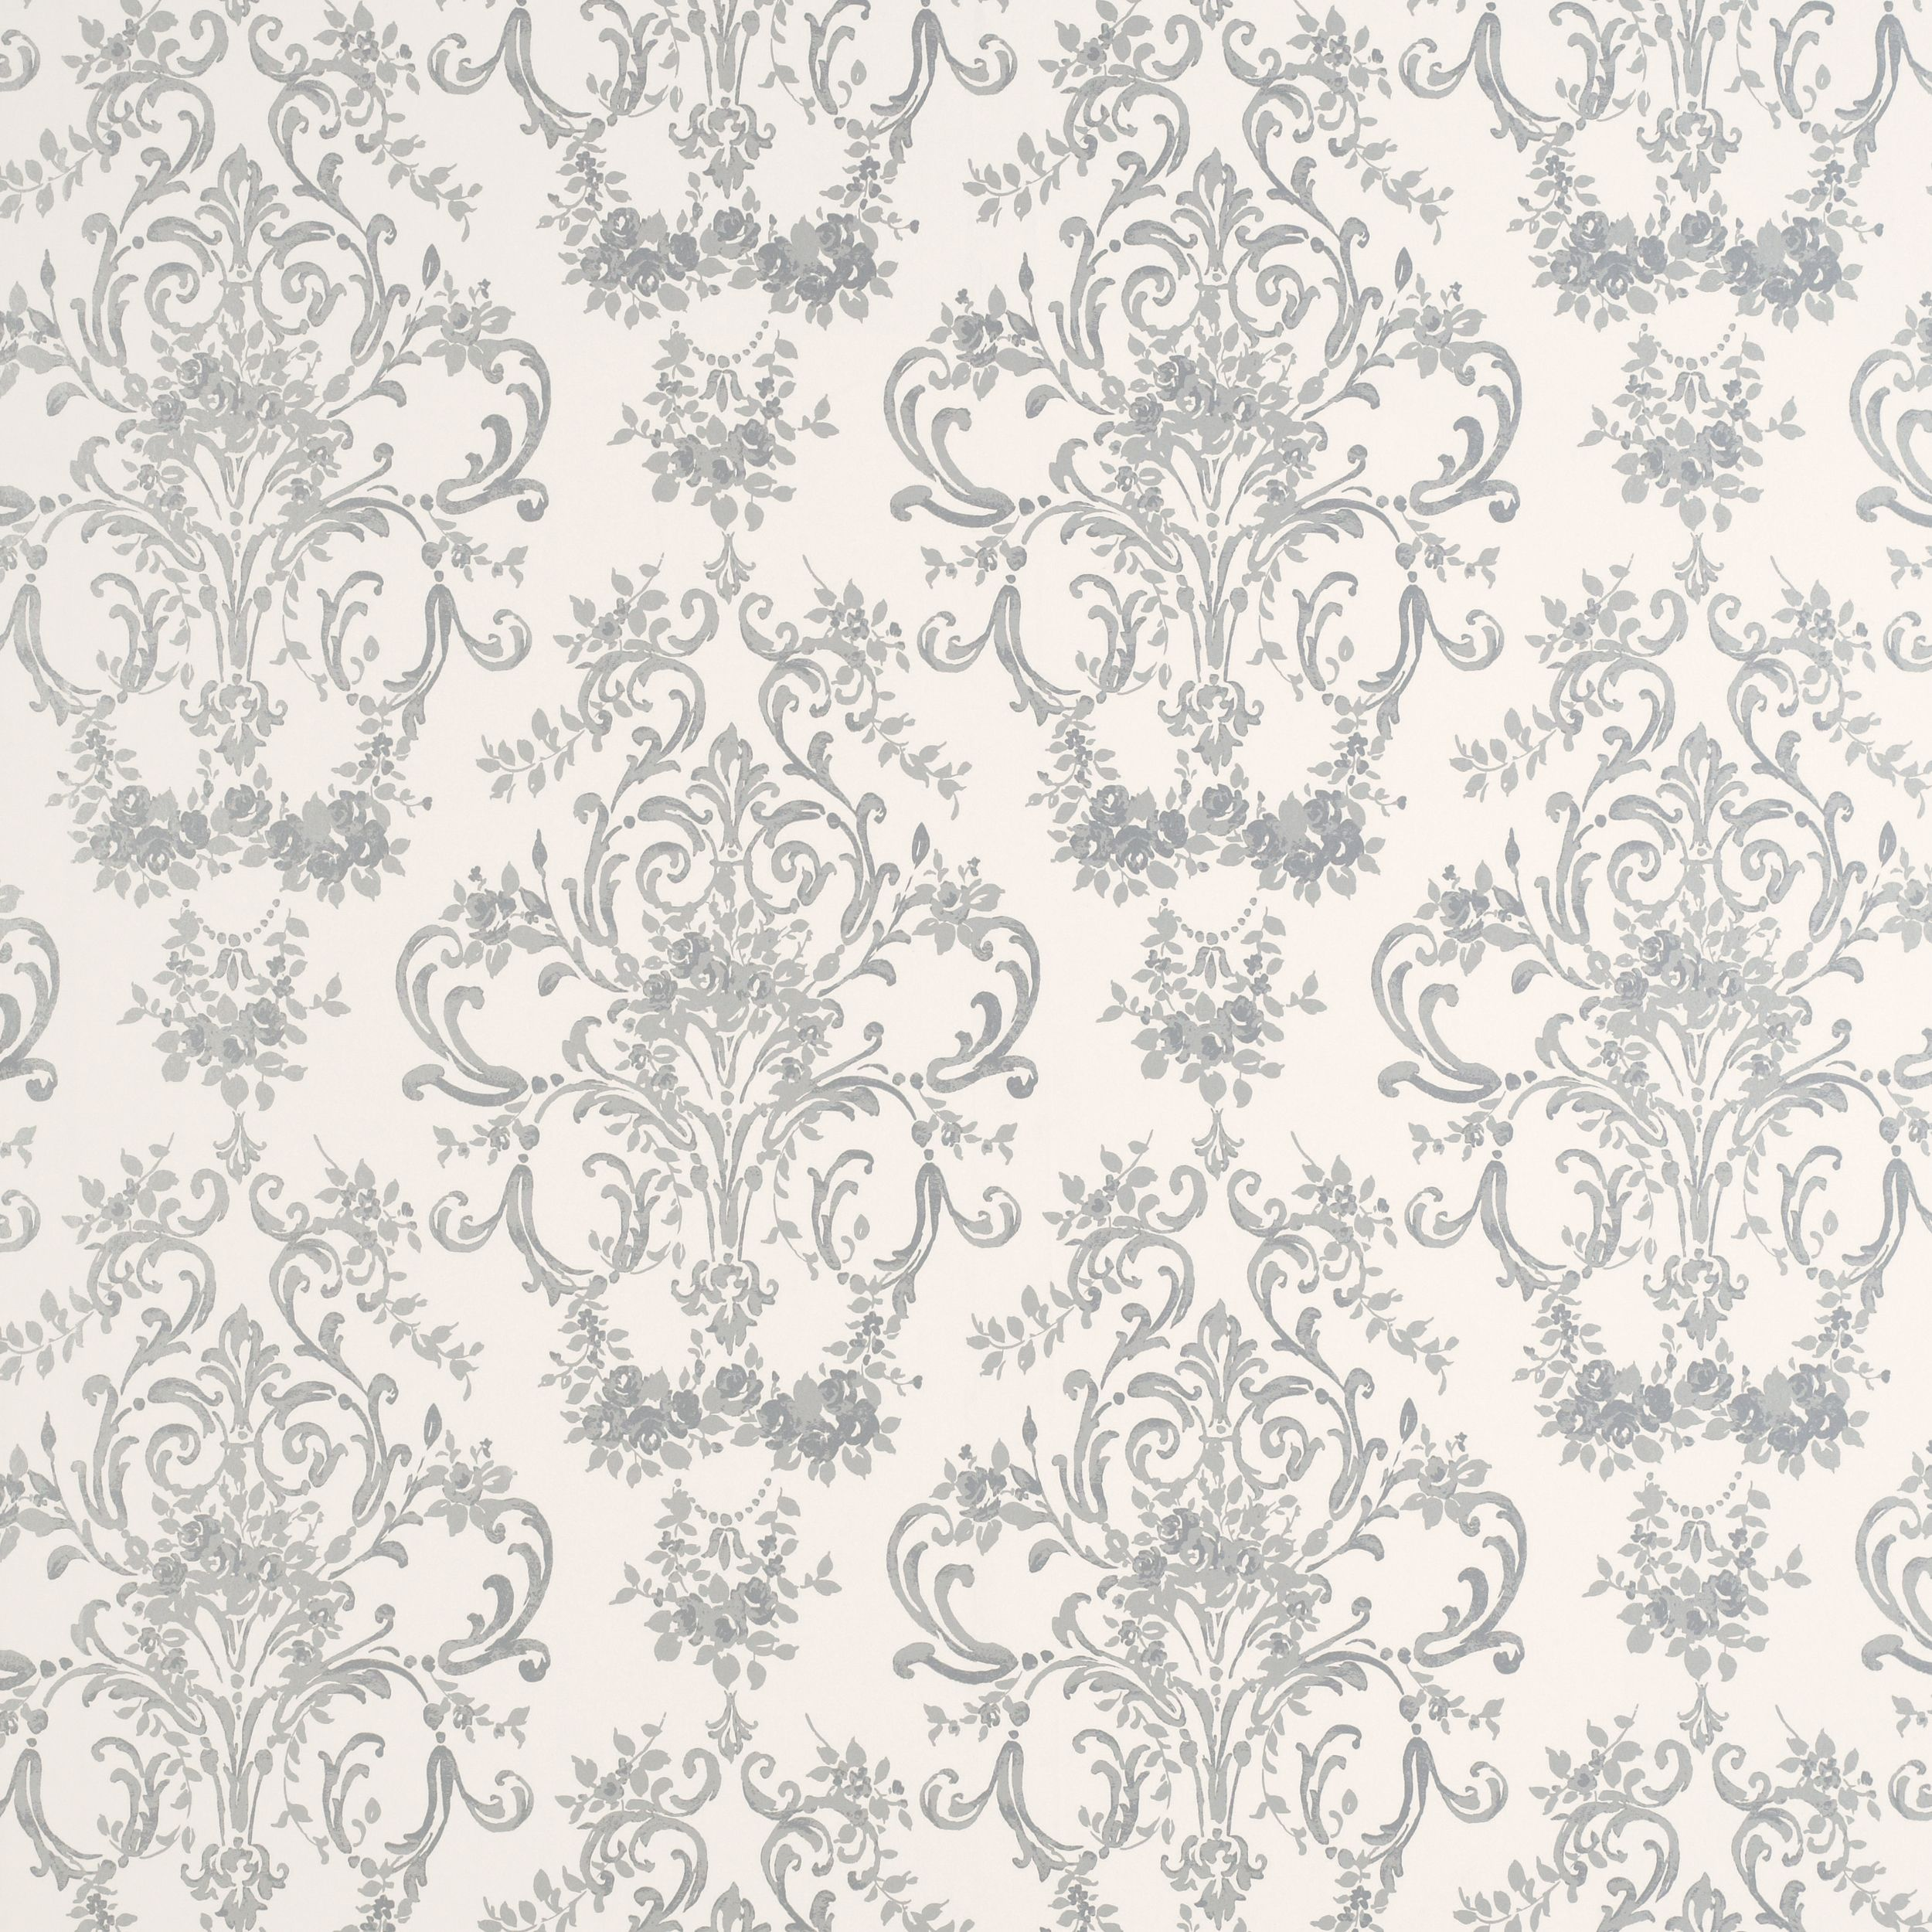 £38.00 Laura Ashley Aston Silver Patterned Wallpaper